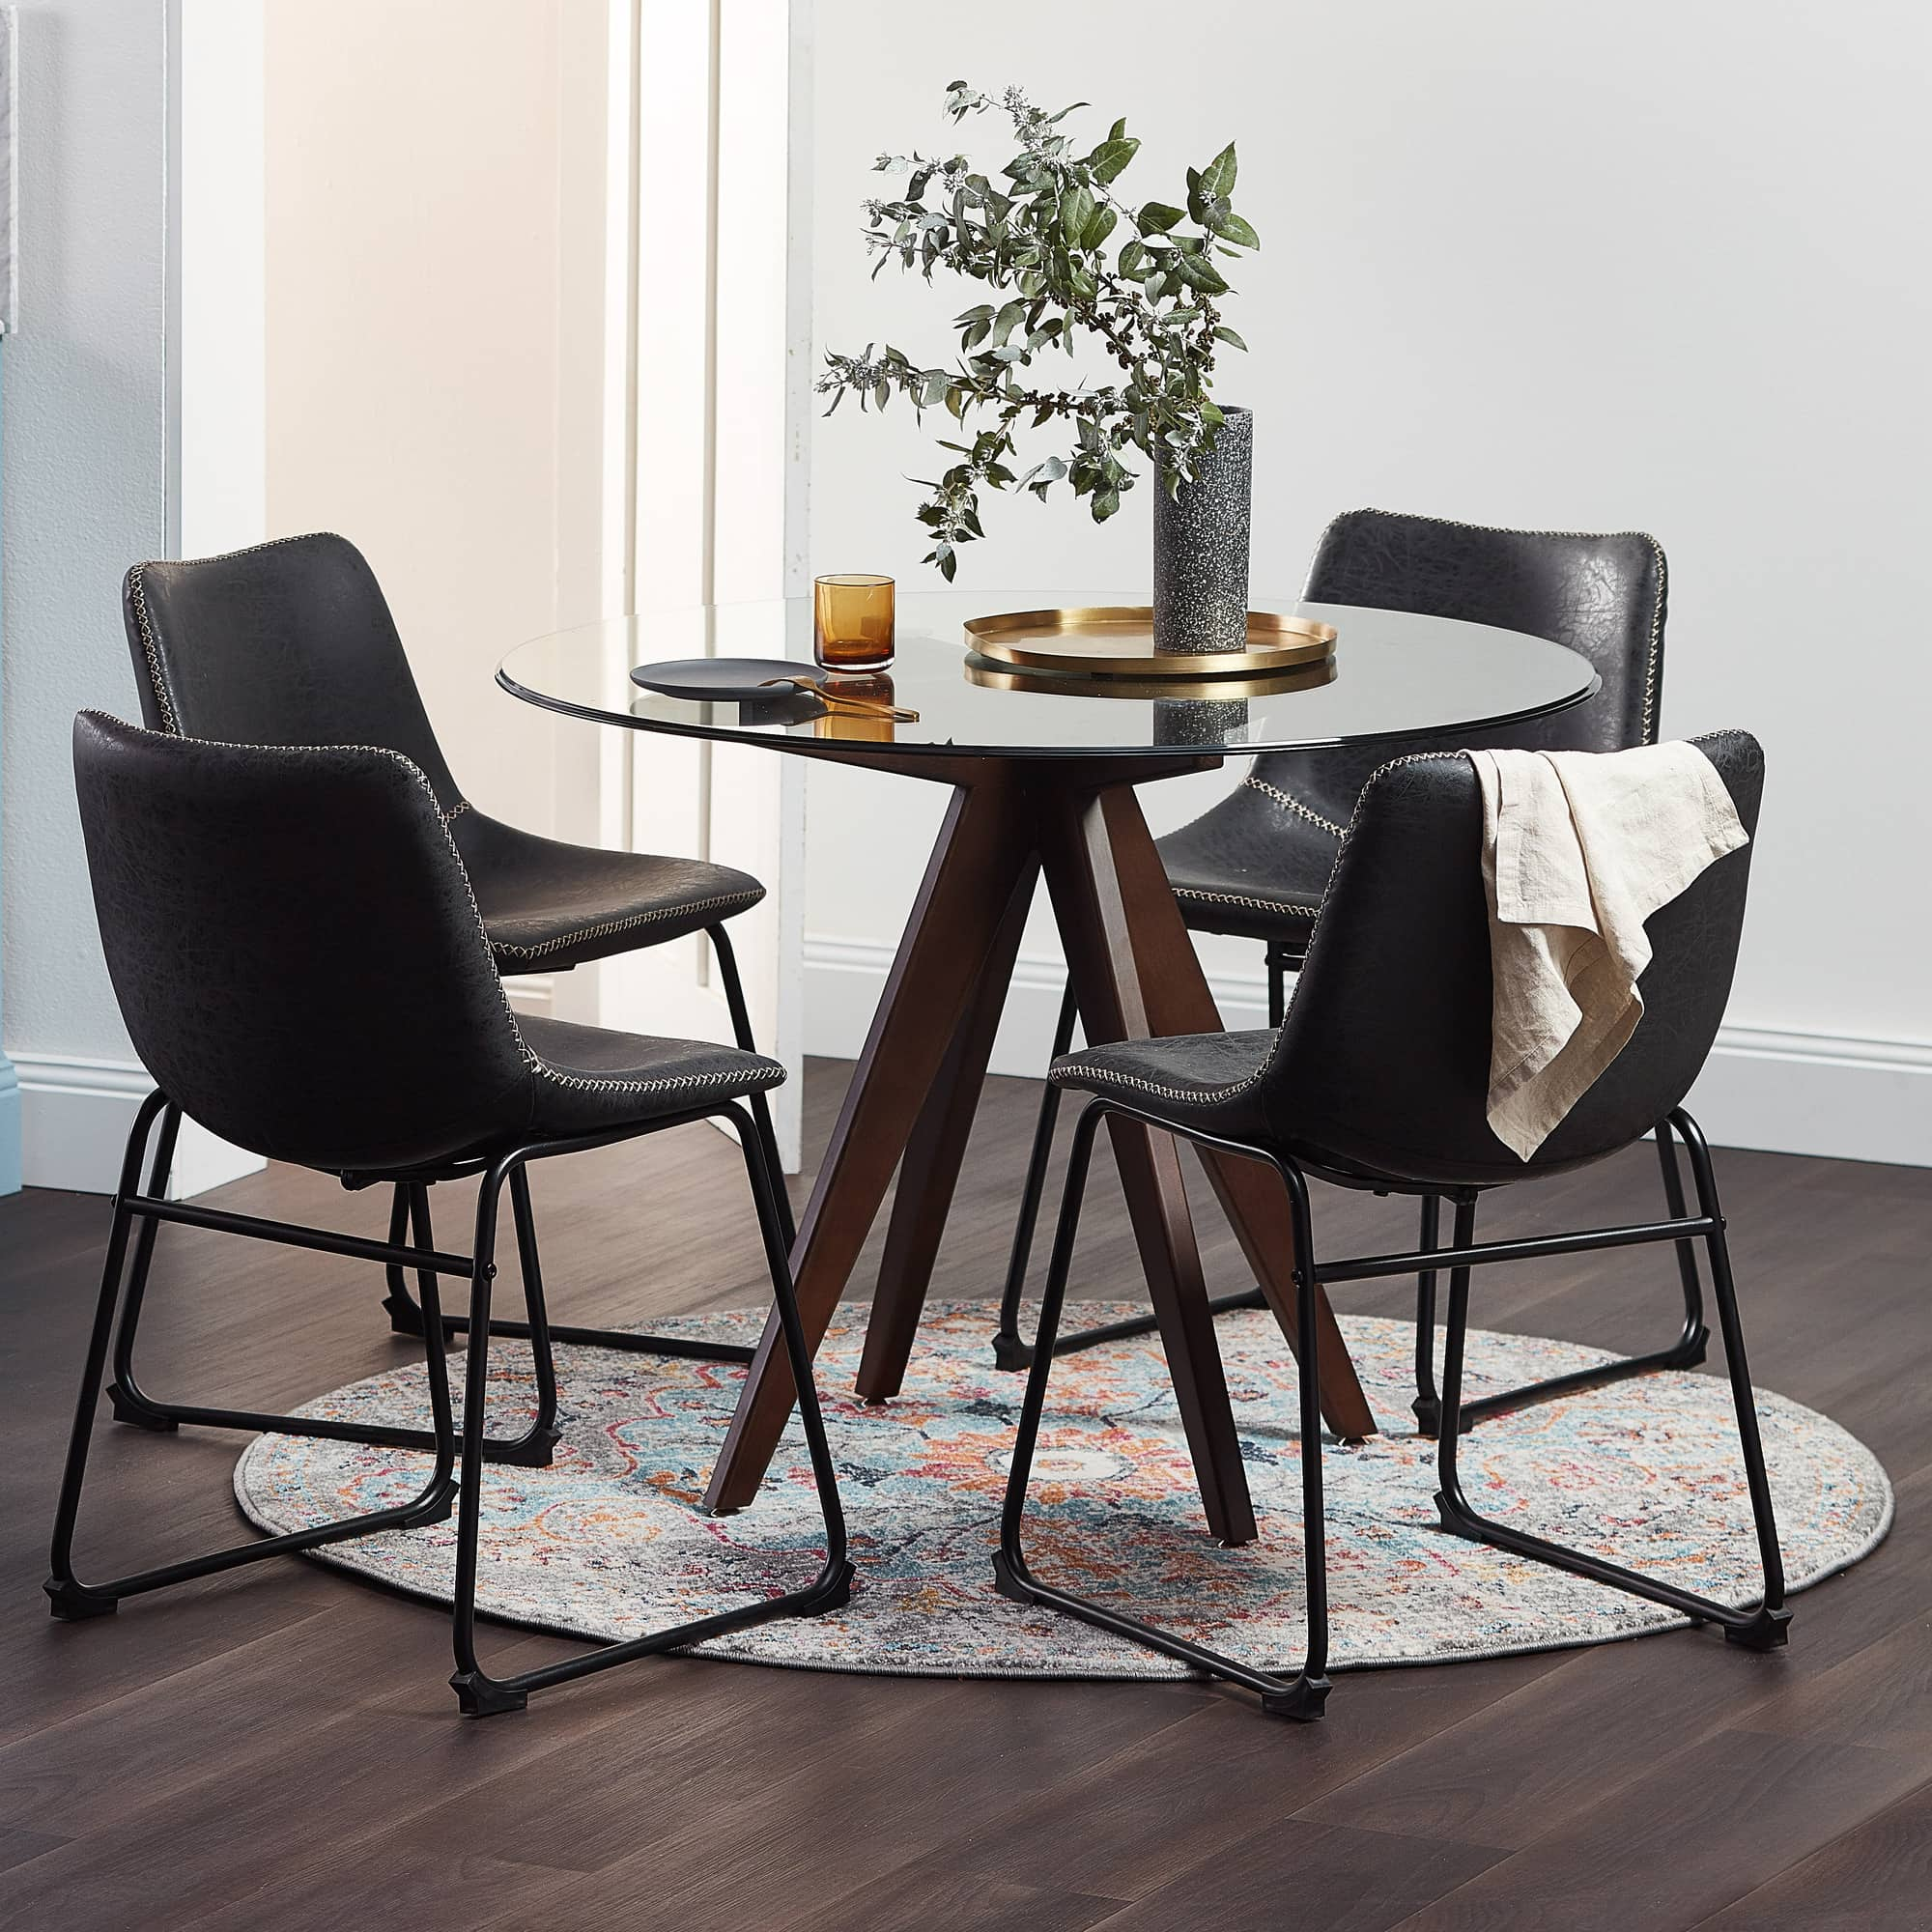 black leather dining chairs with round dining table in modern dining room